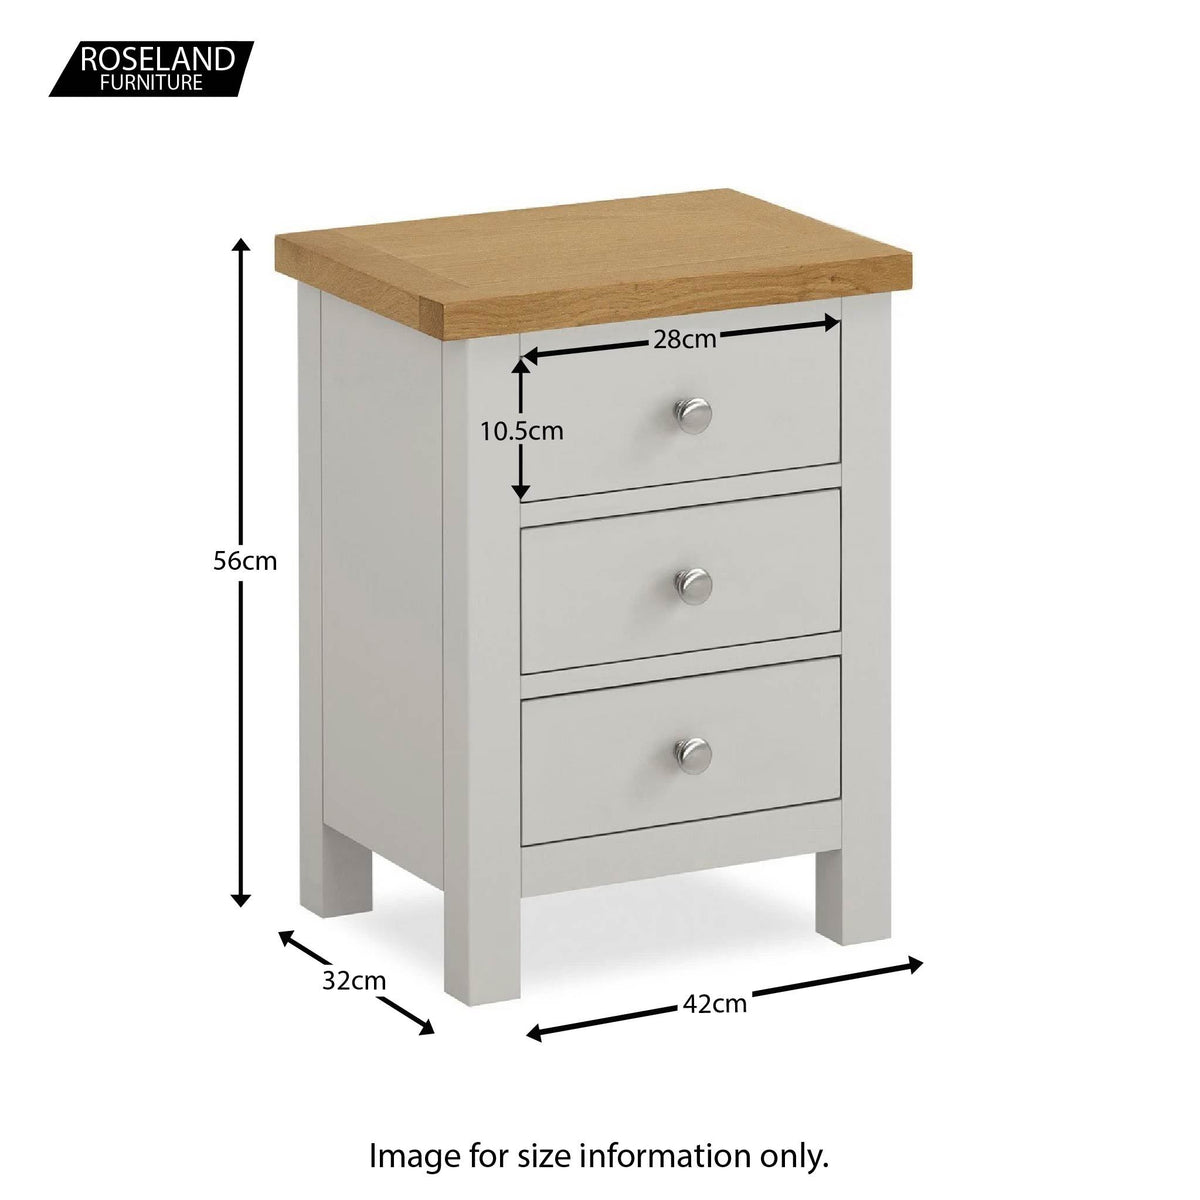 Farrow Grey Bedroom Set: Bedside Table - Size guide